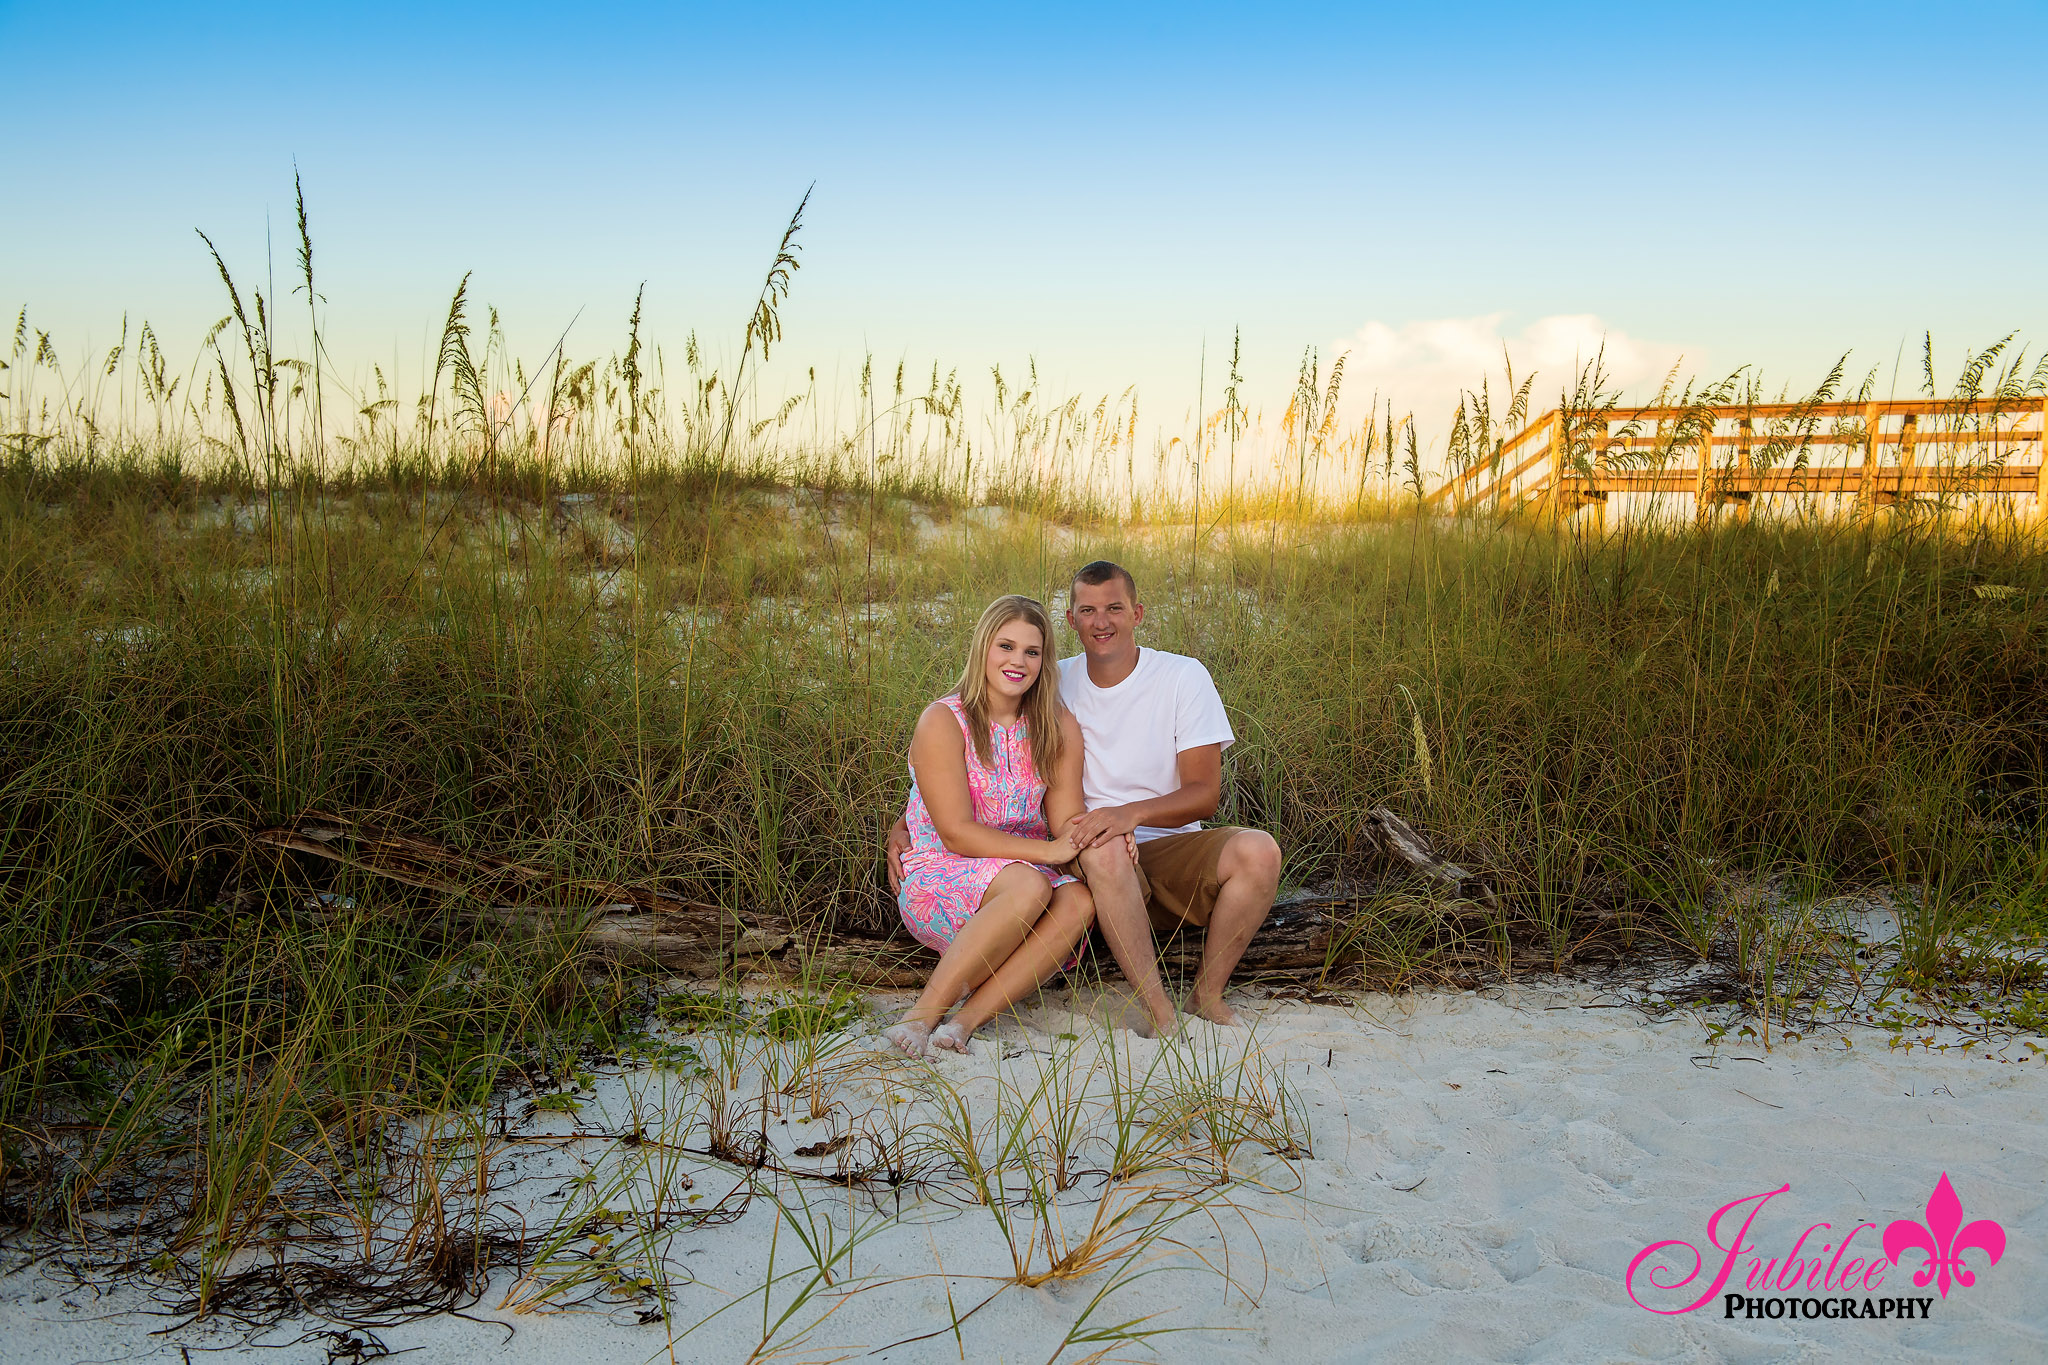 Destin_Sunrise_Photographer_0869